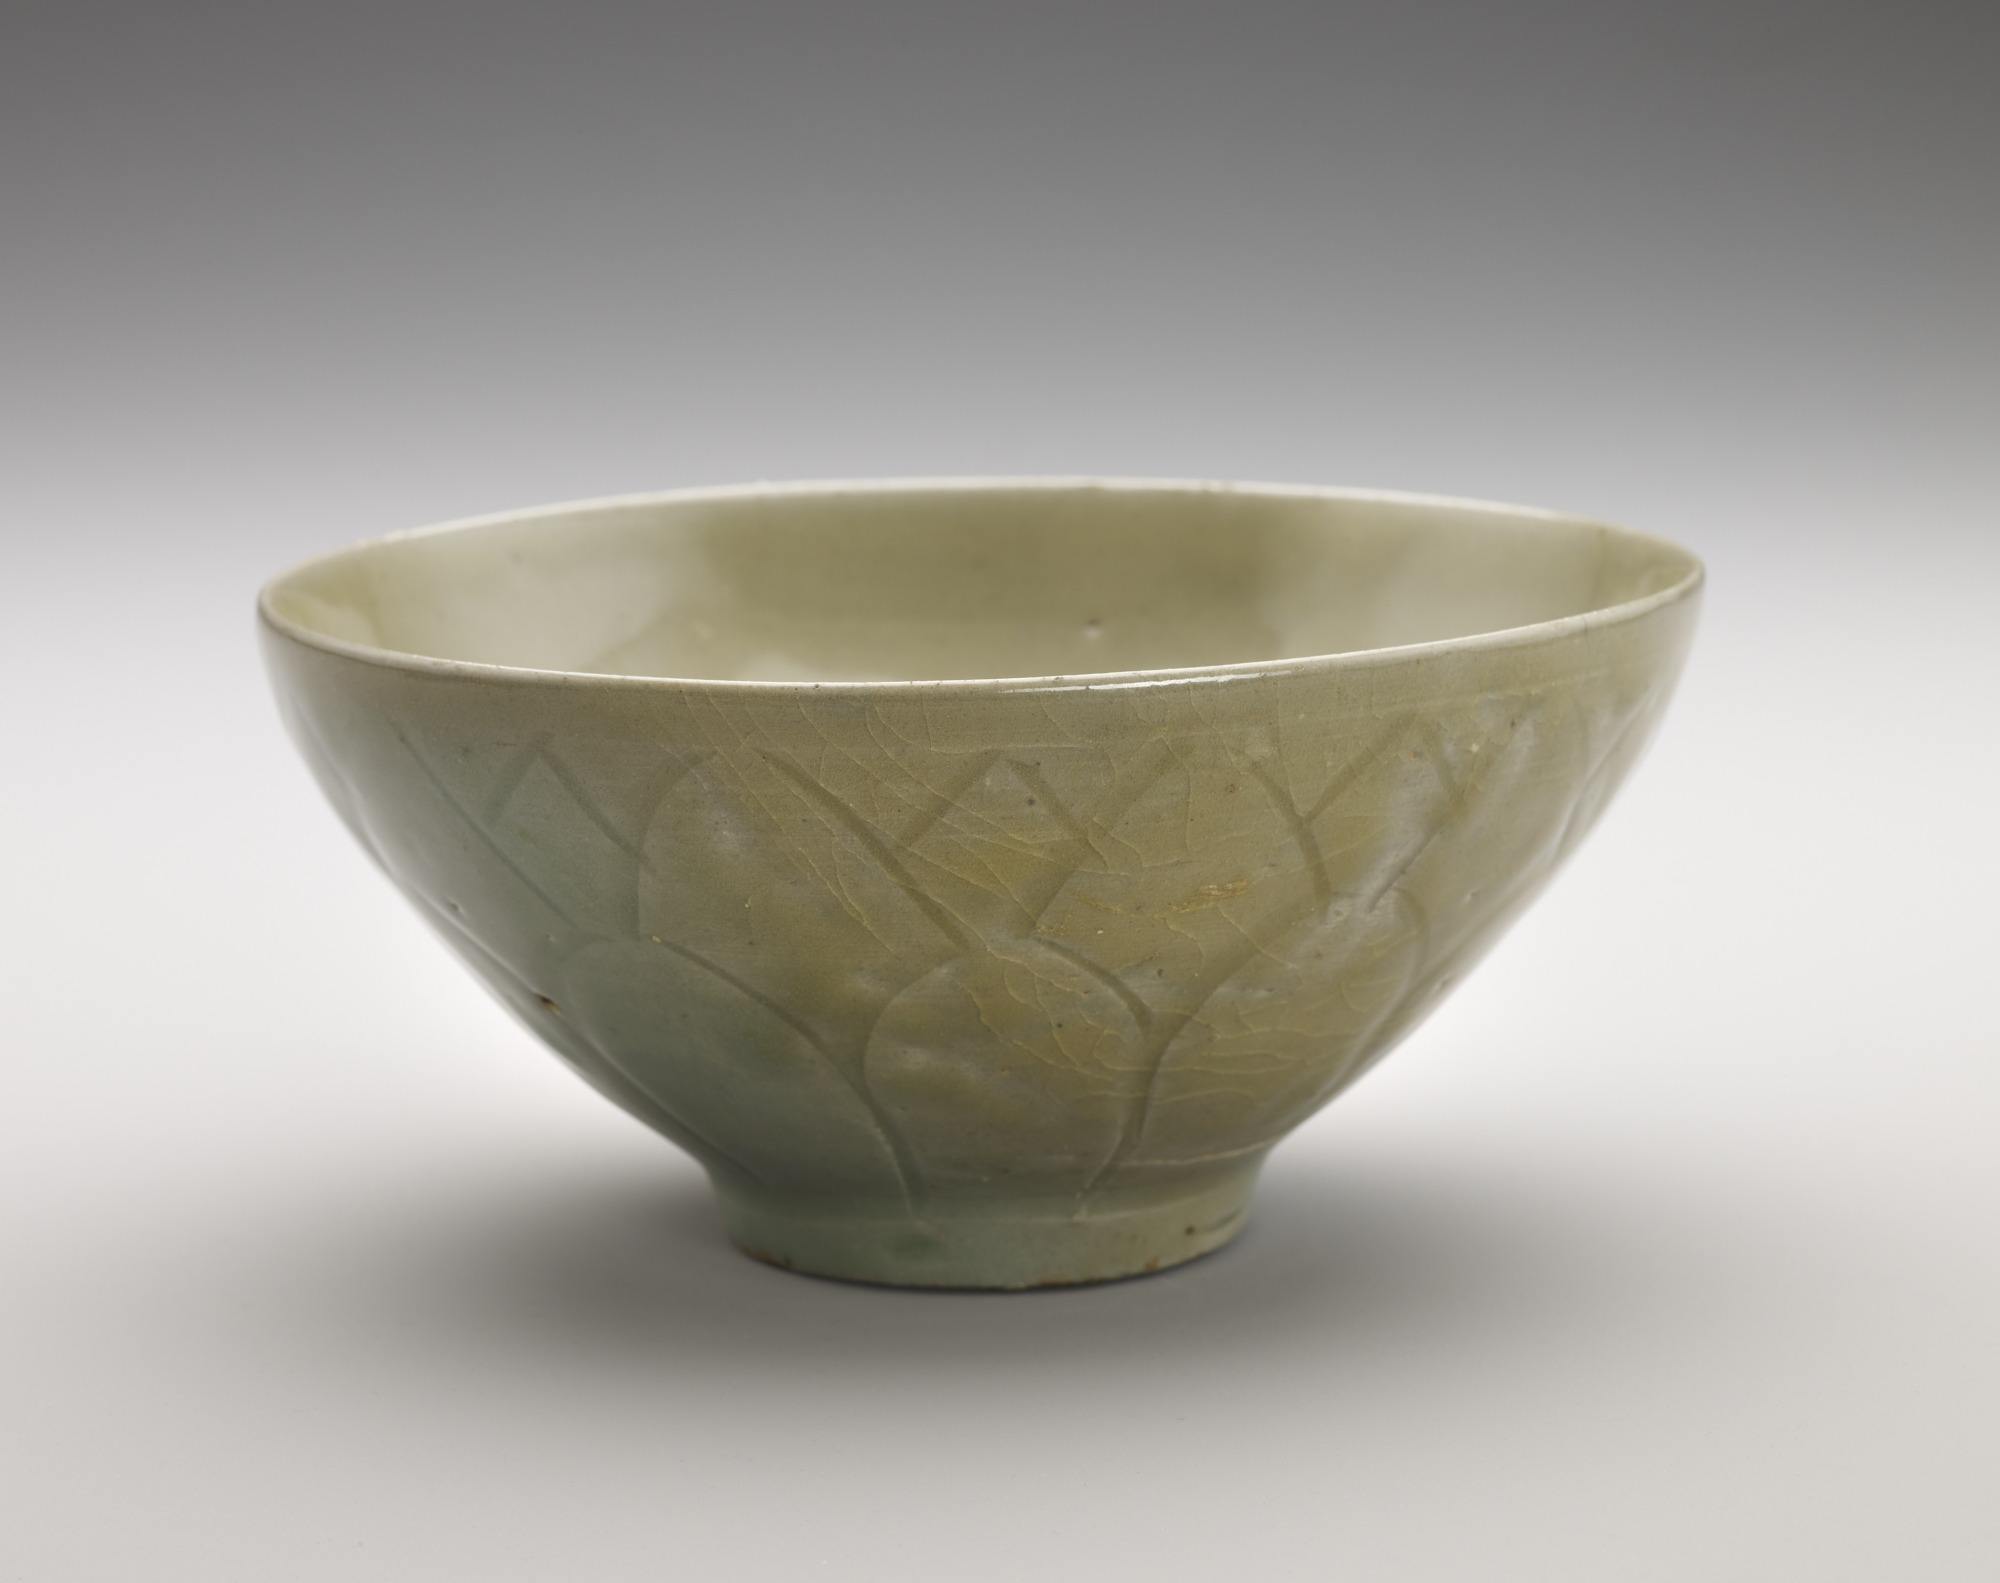 Bowl with incised lotus decoration, profile